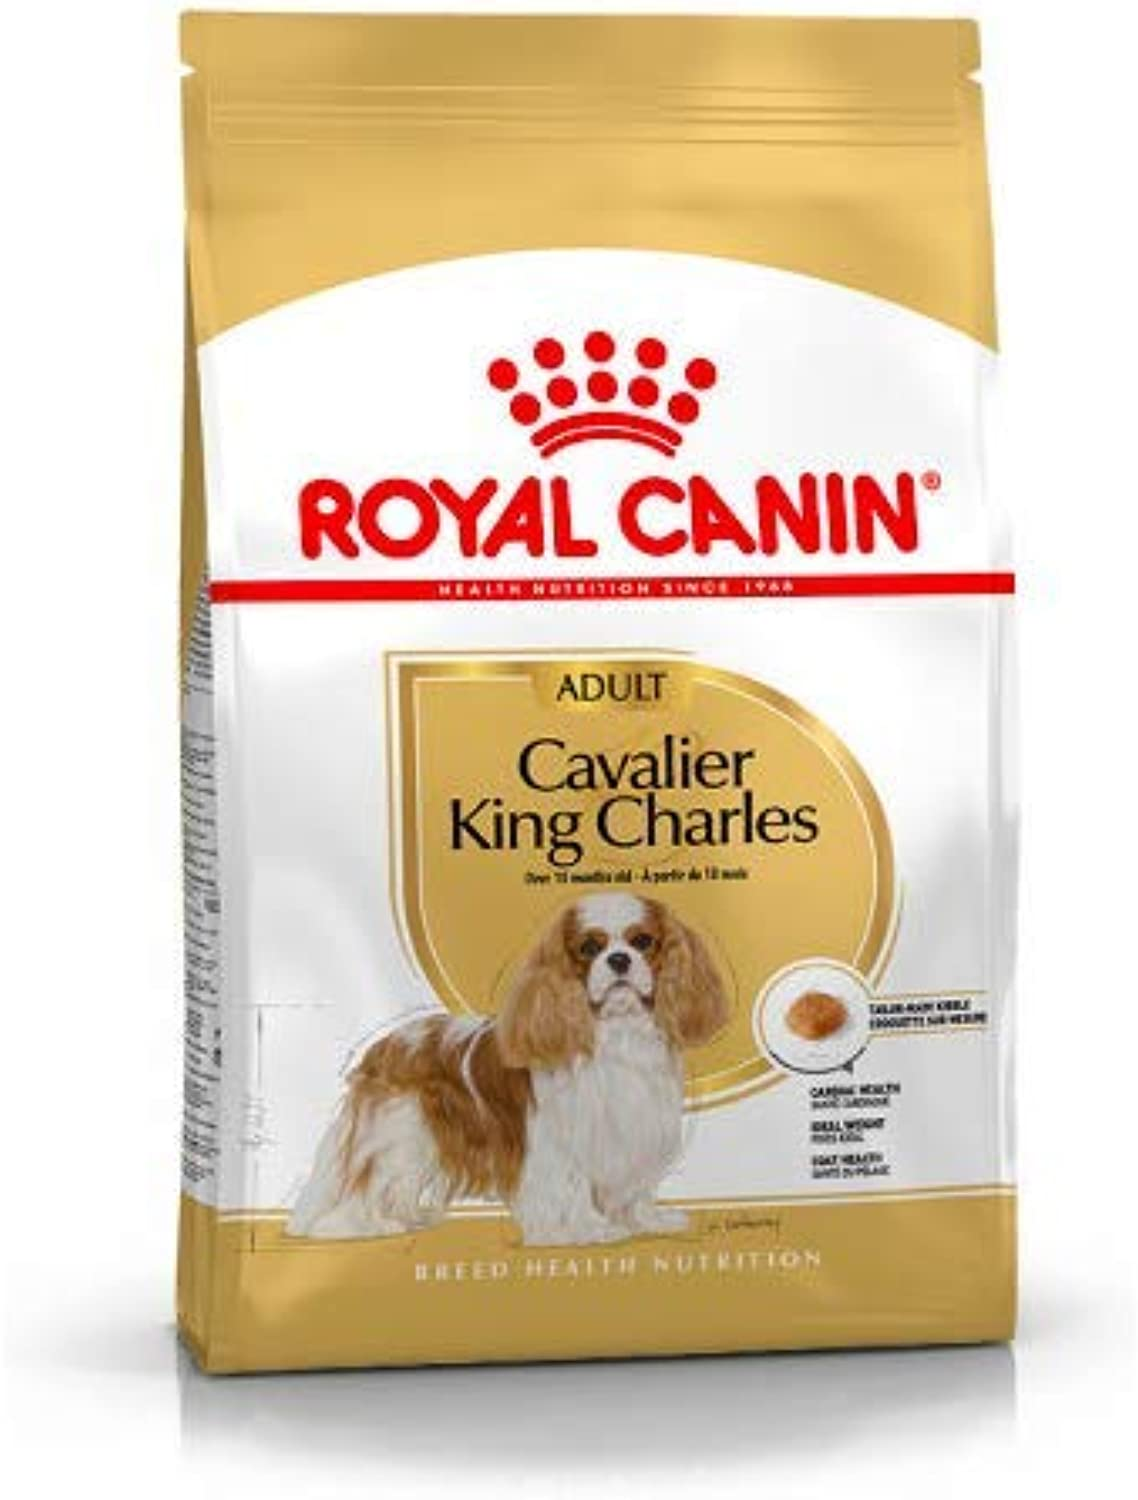 Maltbys' Stores 1904 Limited 7.5kg Royal Canin CAVALIER KING CHARLES ADULT Breed Health Nutrition Dog food